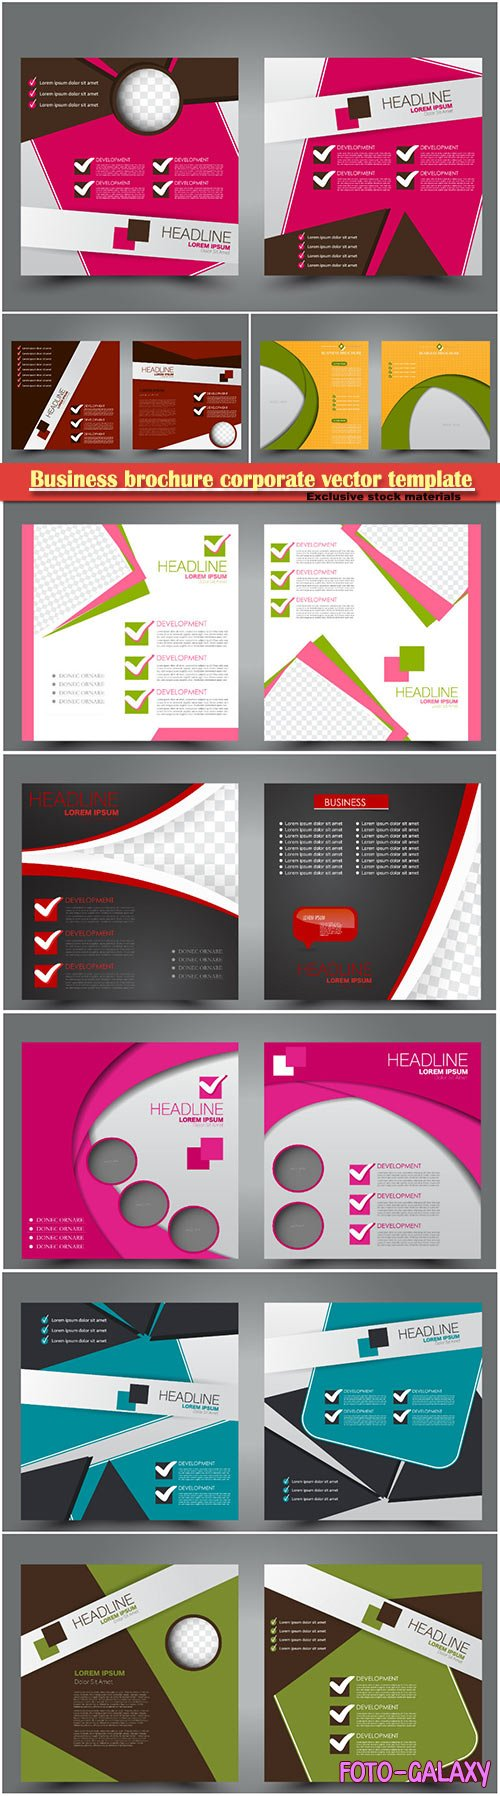 Business brochure corporate vector template, magazine flyer mockup # 14